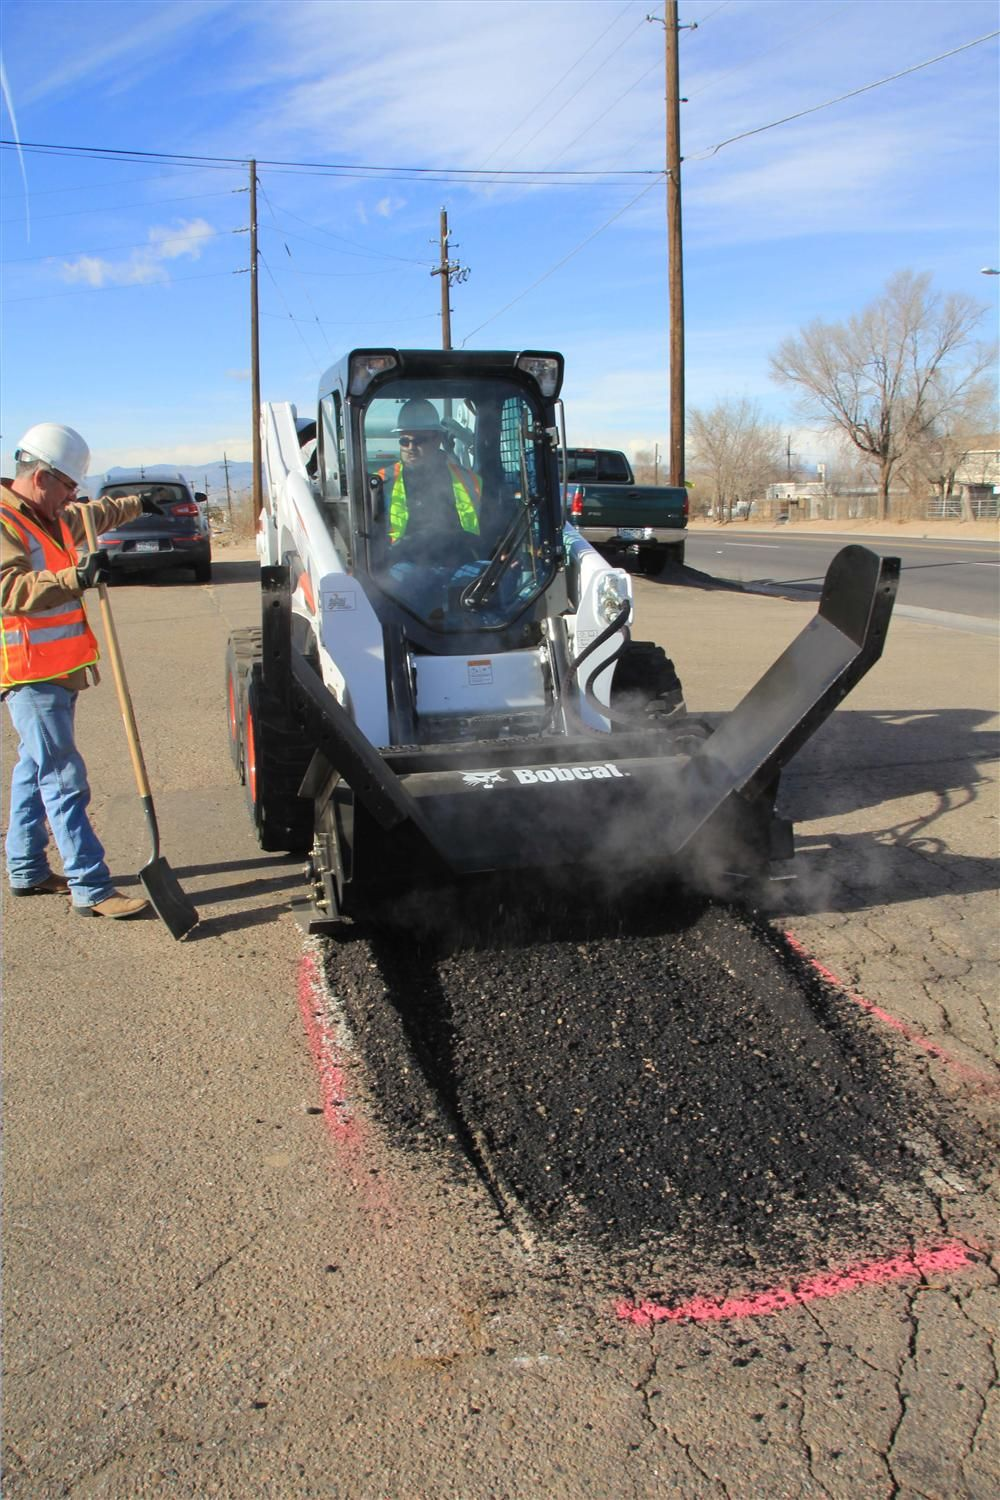 The asphalt preservation tools system consists of an infrared asphalt heater and an asphalt processor that is compatible with 12 approved Bobcat all-wheel steer loaders, skid steer loaders and track loaders.